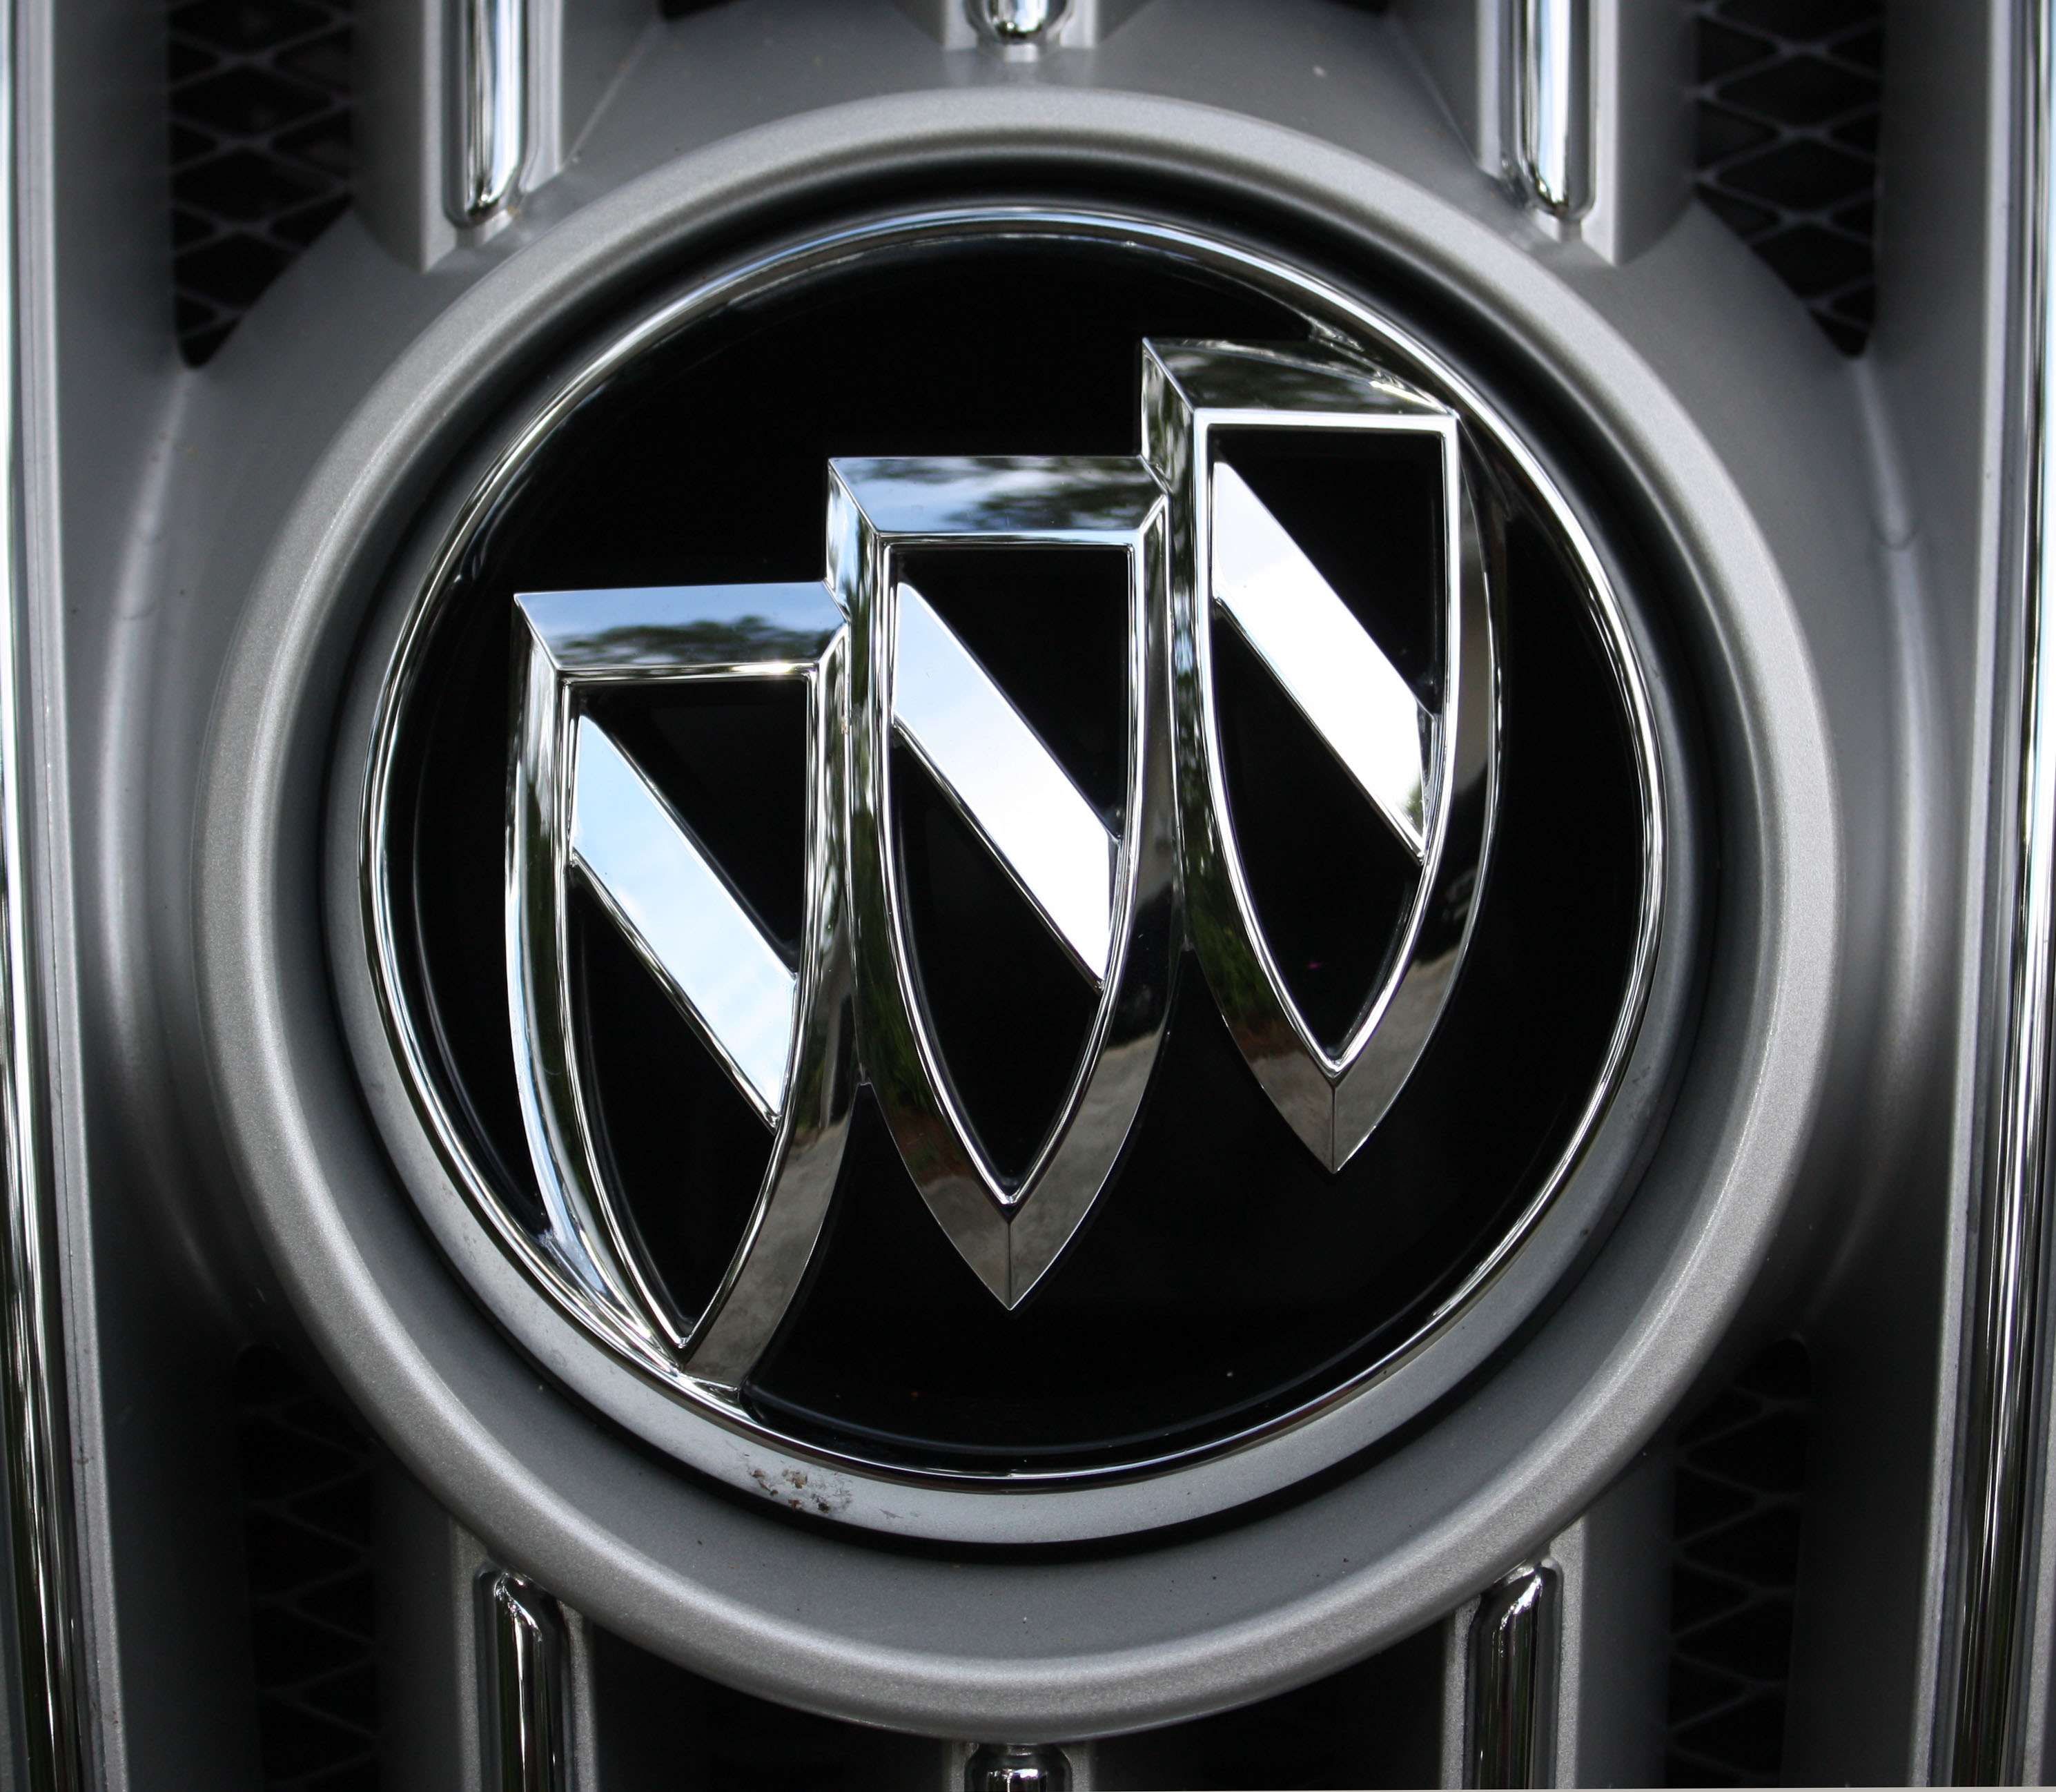 Buick Logo, Buick Car Symbol Meaning and History | Car